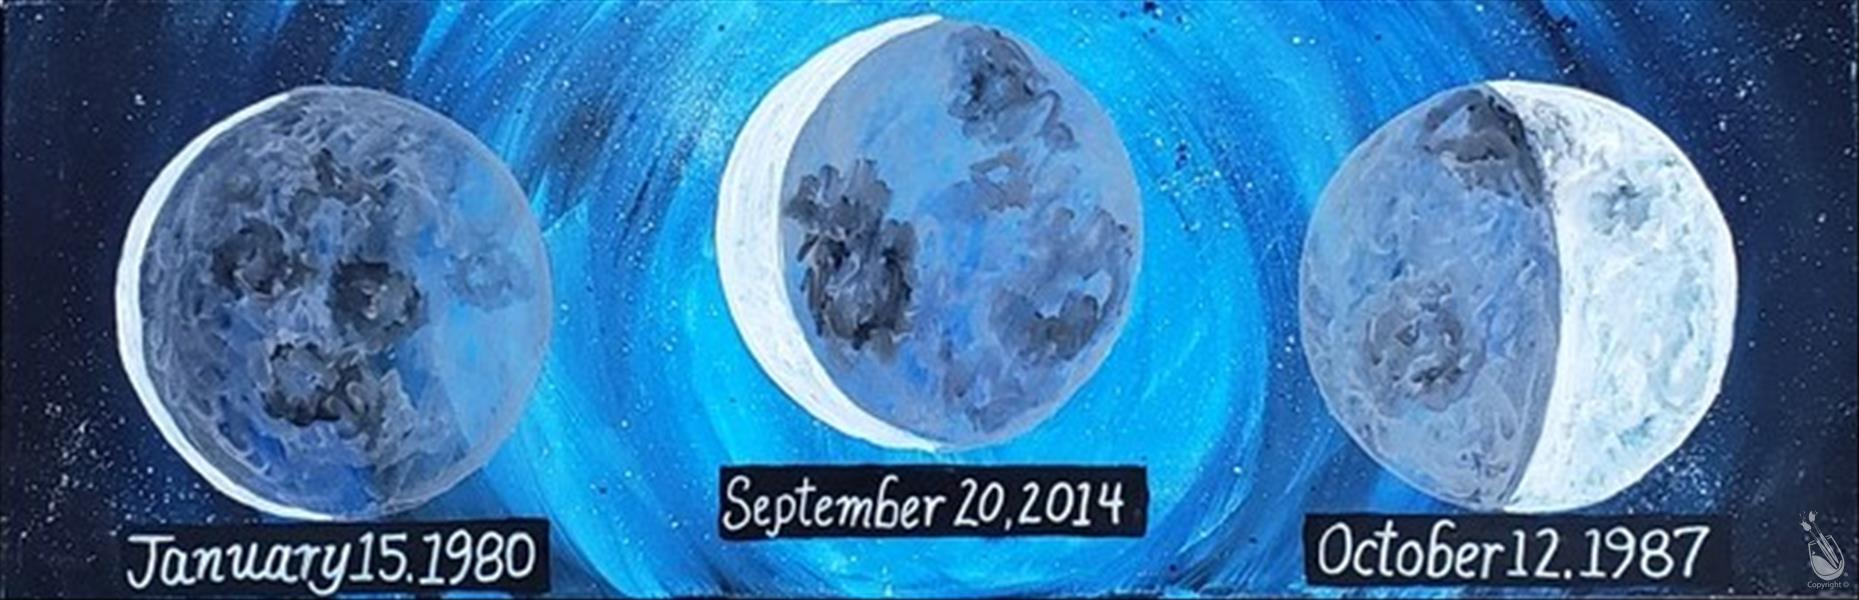 How to Paint Personalize! Moon Dates (2.5hr)